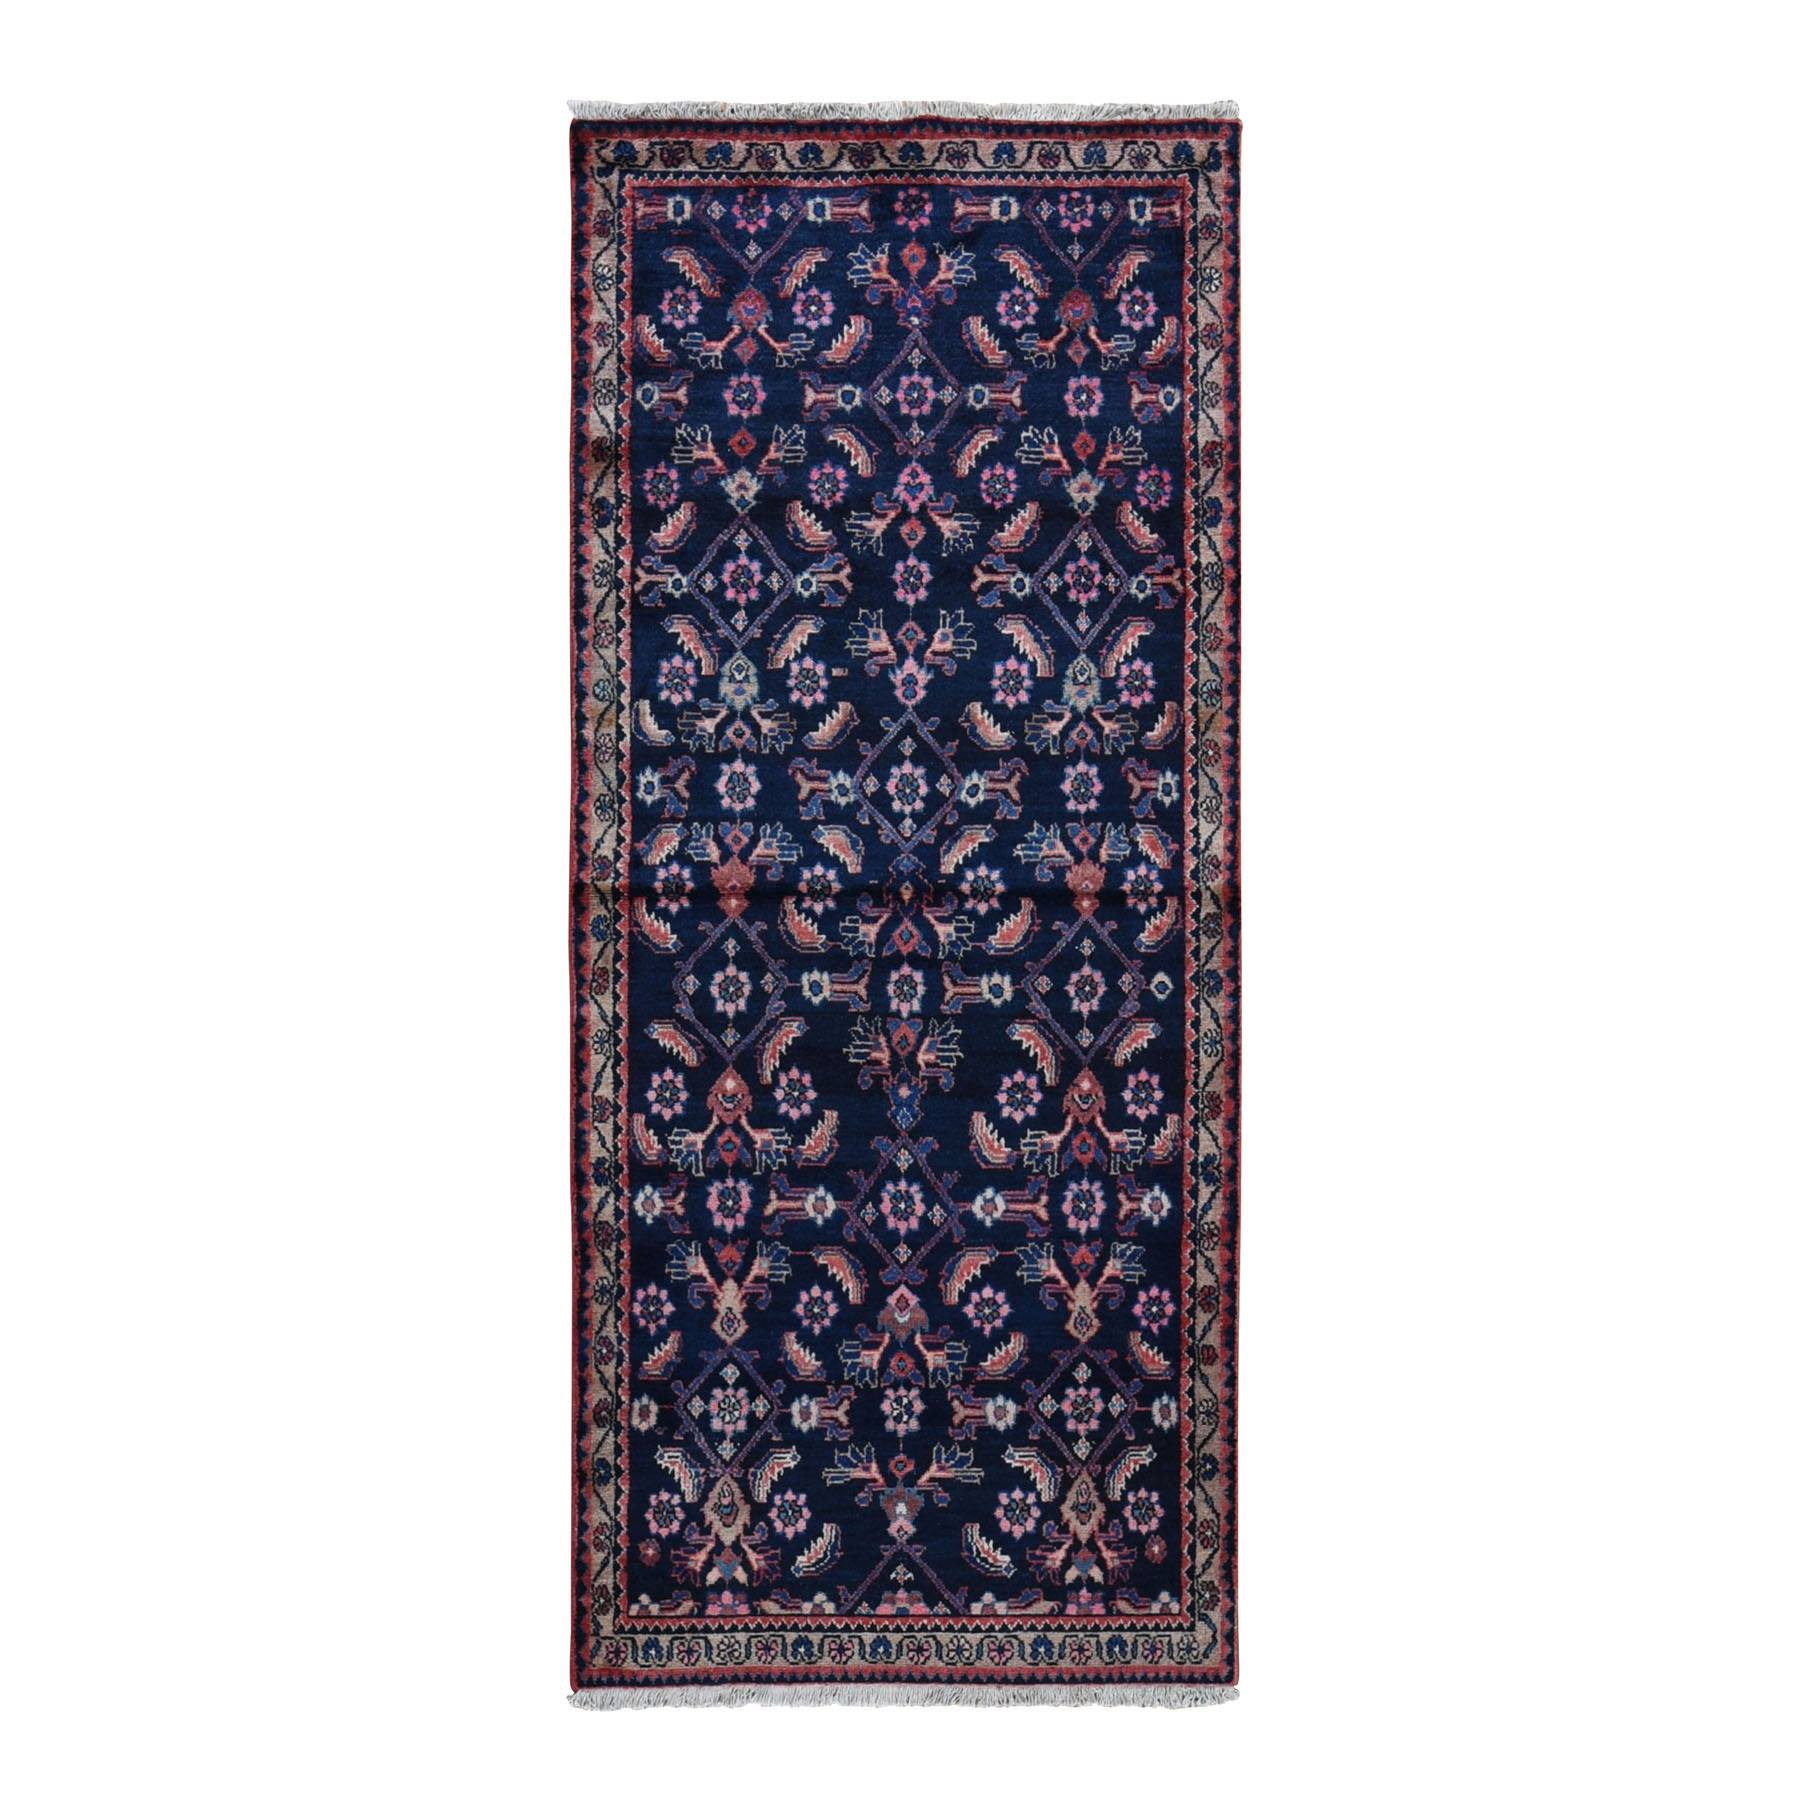 "3'5""x8' Navy Blue Vintage Persian Malayer Herat Fish Design Wide Runner Hand Woven Bohemian Rug"